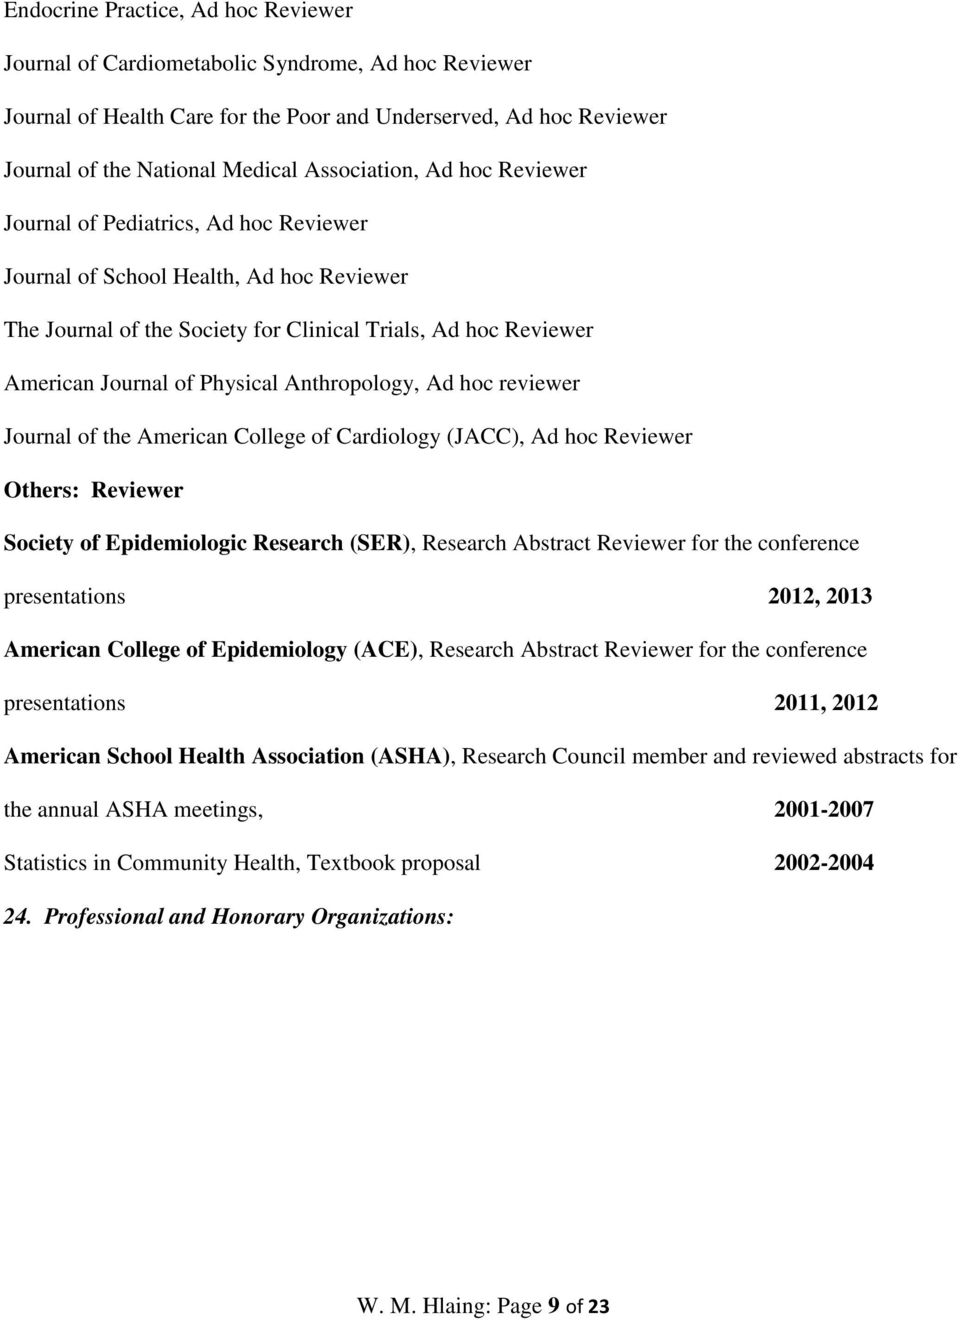 Physical Anthropology, Ad hoc reviewer Journal of the American College of Cardiology (JACC), Ad hoc Reviewer Others: Reviewer Society of Epidemiologic Research (SER), Research Abstract Reviewer for